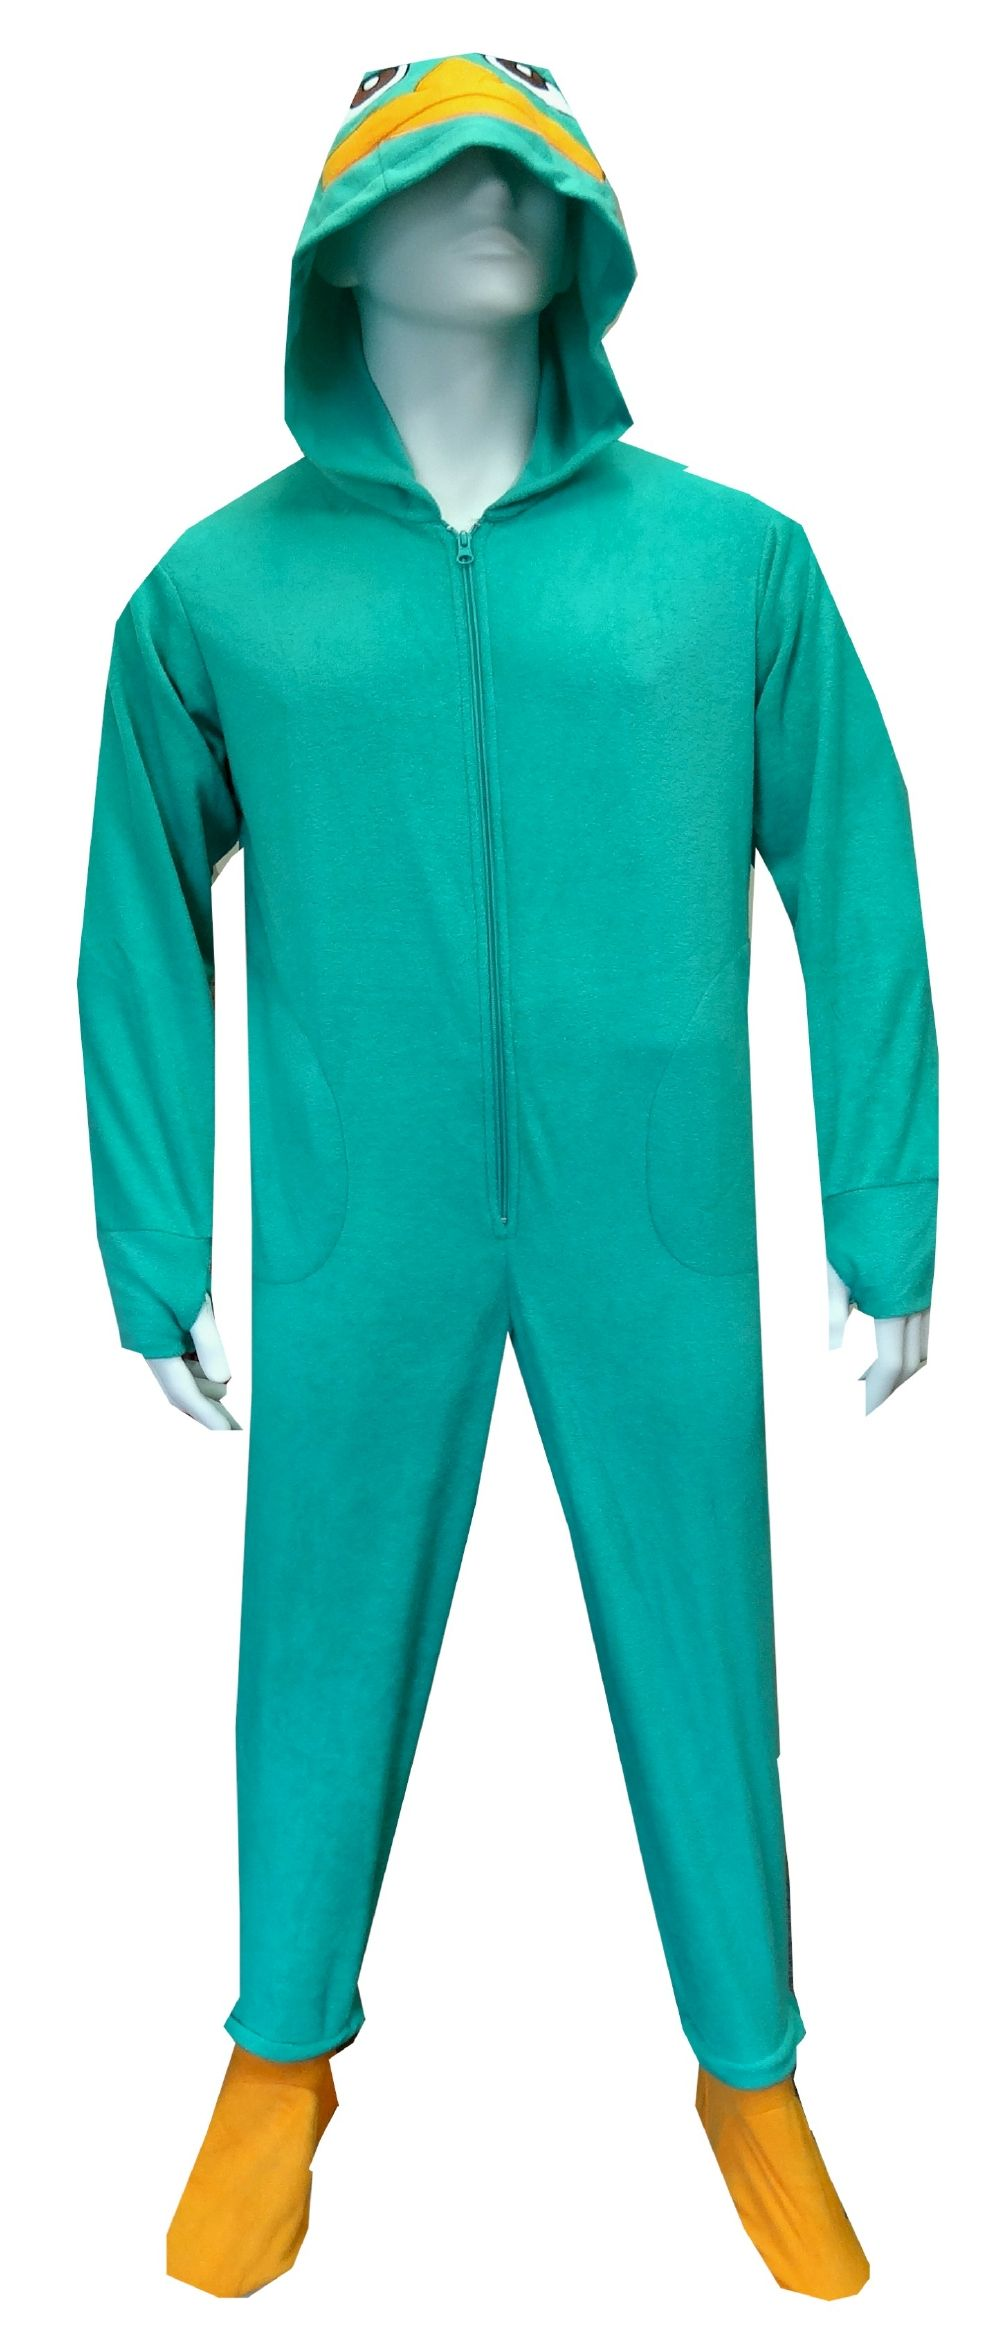 Phineas And Ferb Perry The Platypus Footie Pajamas with Hood for adults.  Yeah 4d2bb64b8